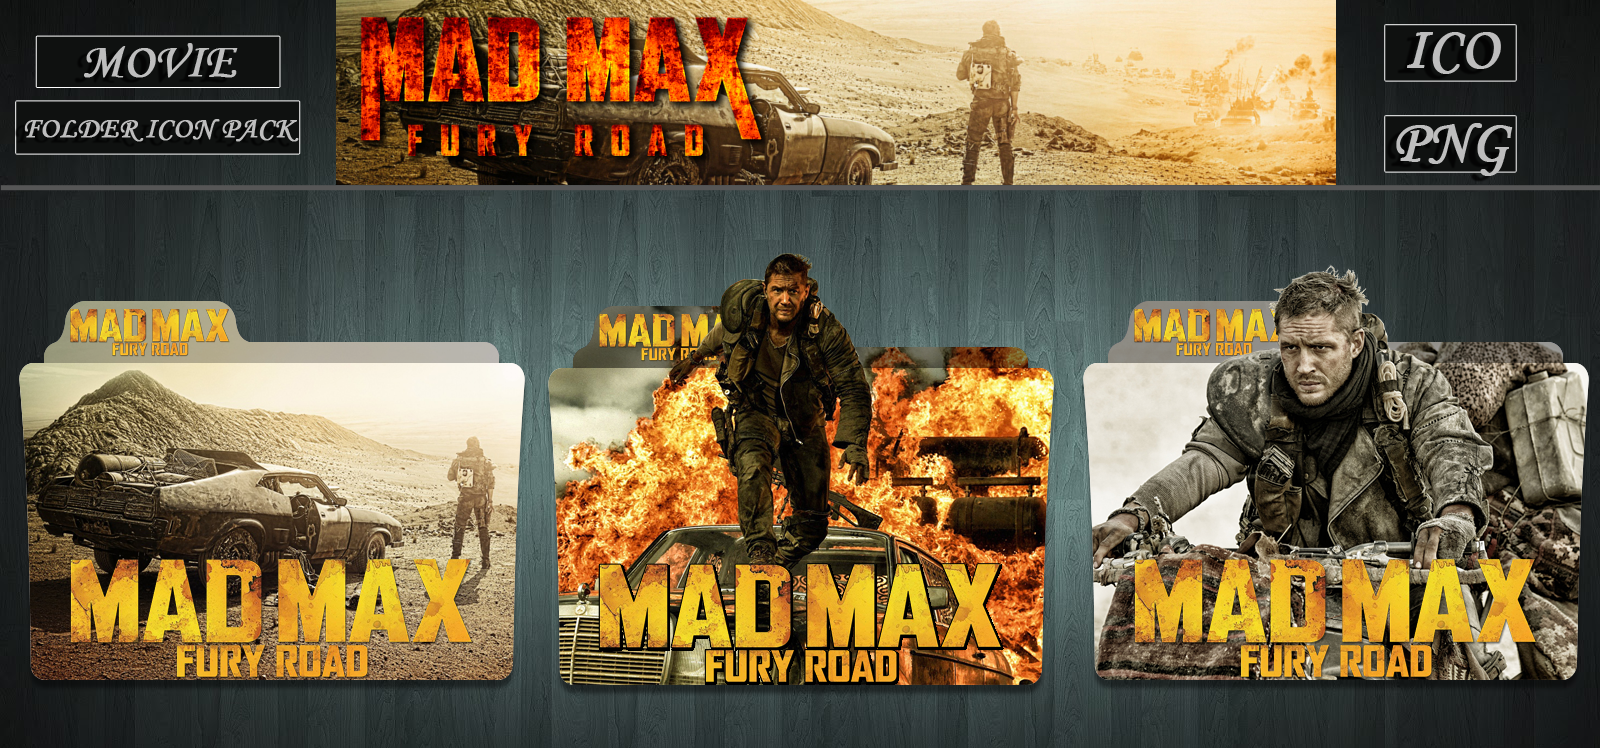 Mad Max Fury Road 2015 Folder Icon Pack By Zsotti60 On Deviantart